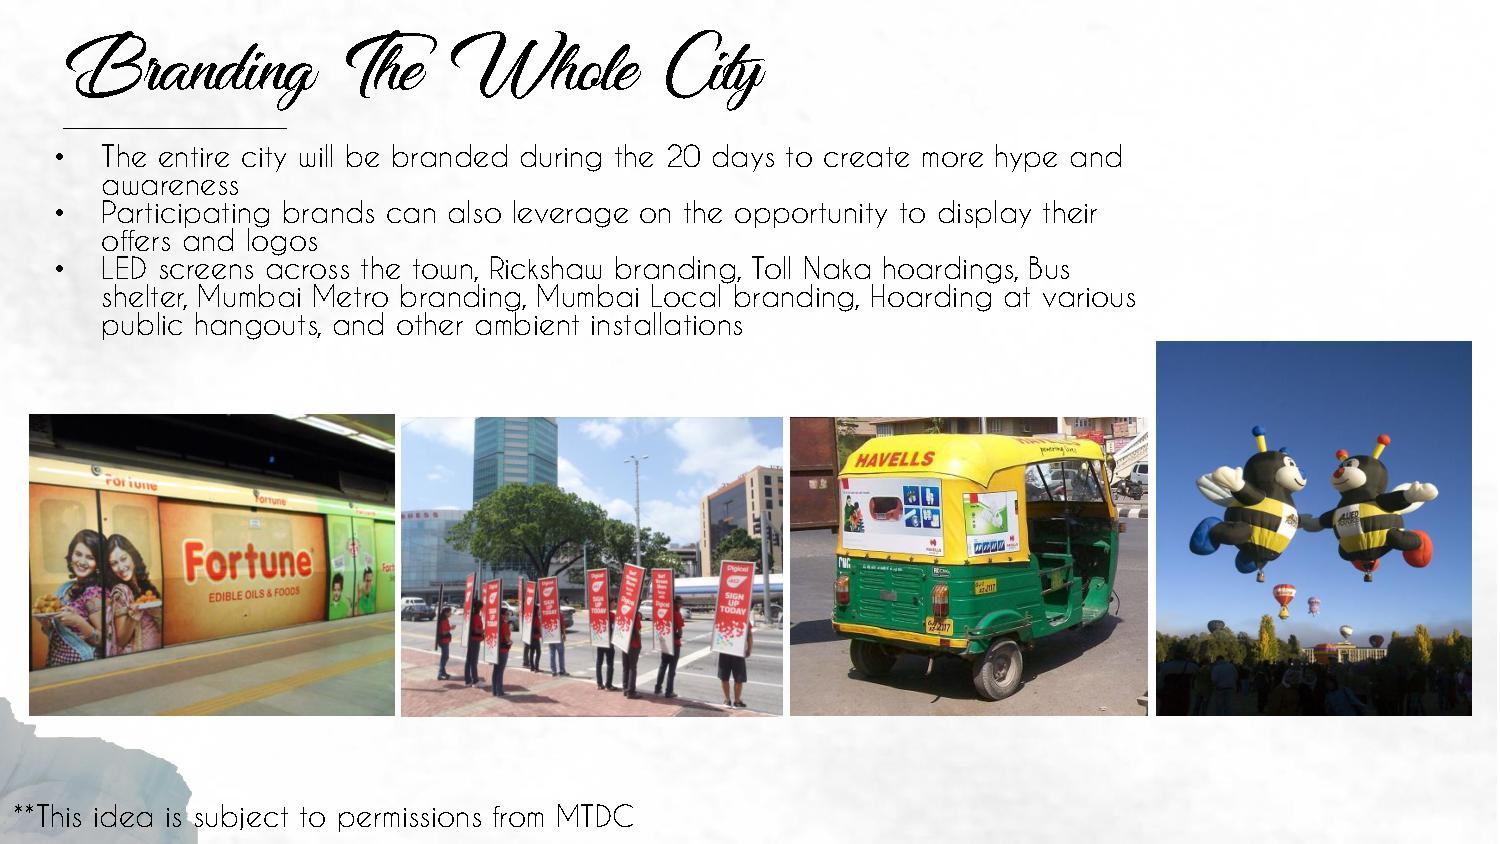 Branding The Whole City • The entire city will be branded during the 20 days to create more hype and awareness • Participating brands can also leverage on the opportunity to display their offers and logos • LED screens across the town, Rickshaw branding, Toll Naka hoardings, Bus shelter, Mumbai Metro branding, Mumbai Local branding, Hoarding at various public hangouts, and other ambient installations **This idea is subject to permissions from MTDC